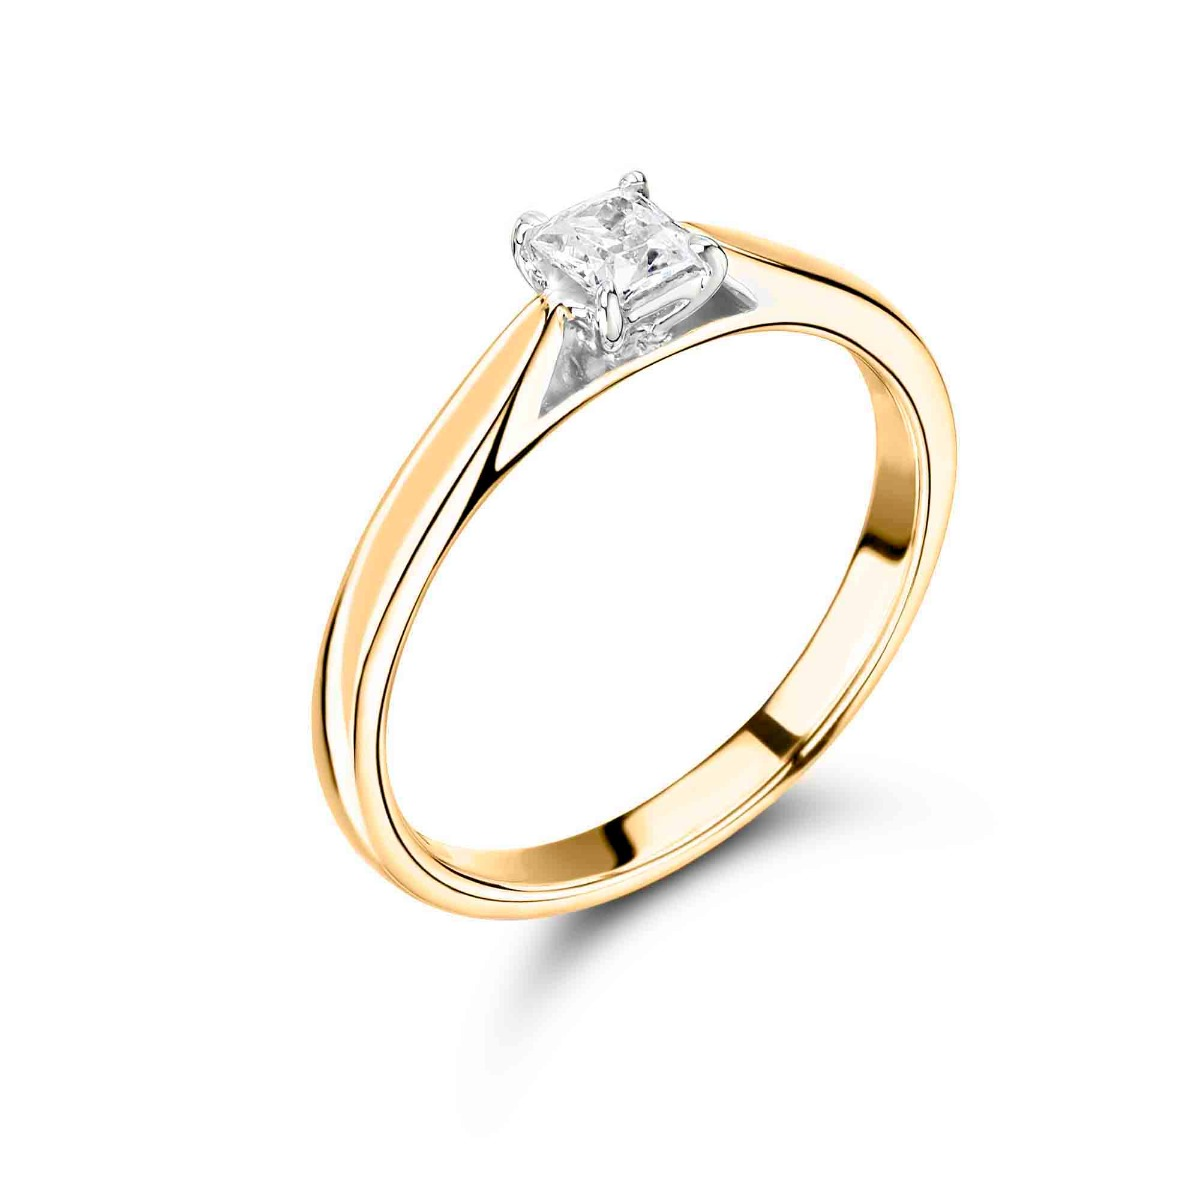 0.25ct Abigail Solitaire | Diamond Princess Solitaire Engagement Ring | 18K Yellow Gold